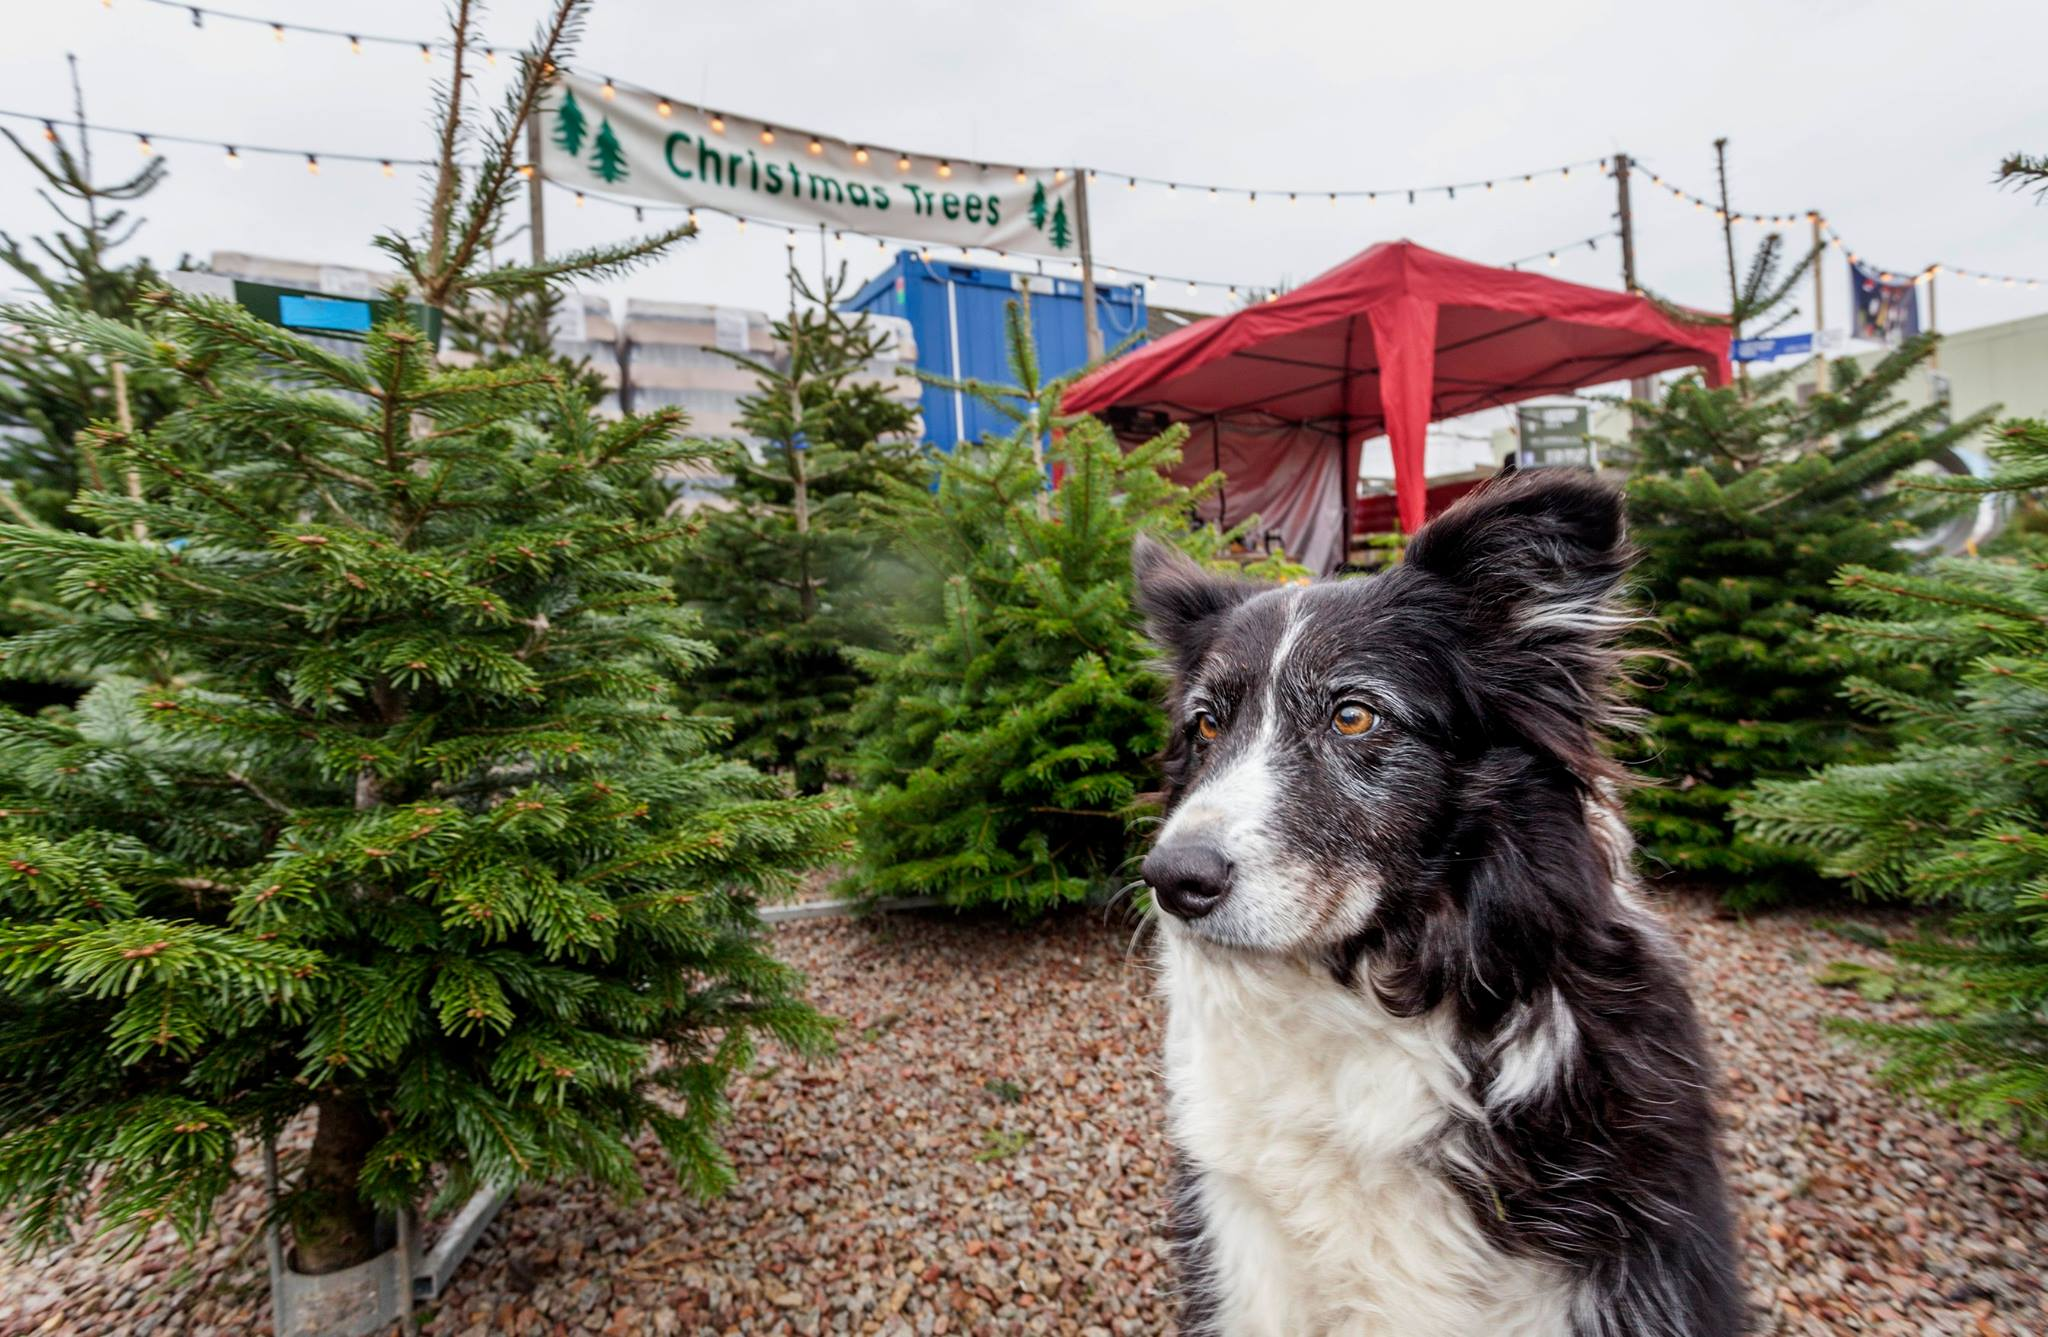 News from Ladydowns Christmas trees, Penzance, Cornwall